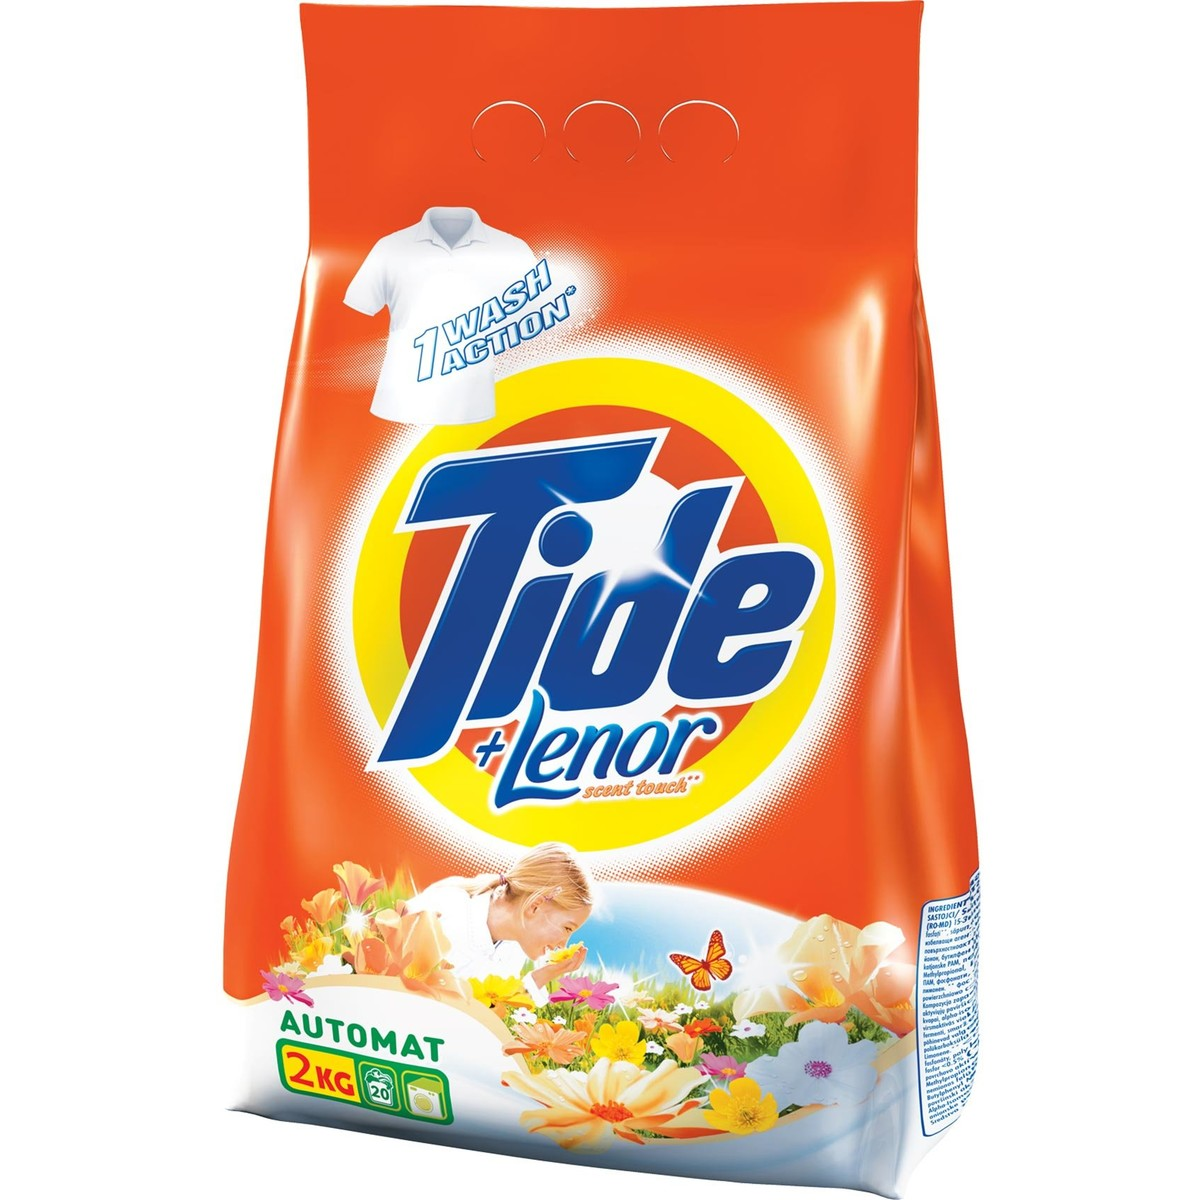 Tide automat 2in1 Lenor Touch 2kg